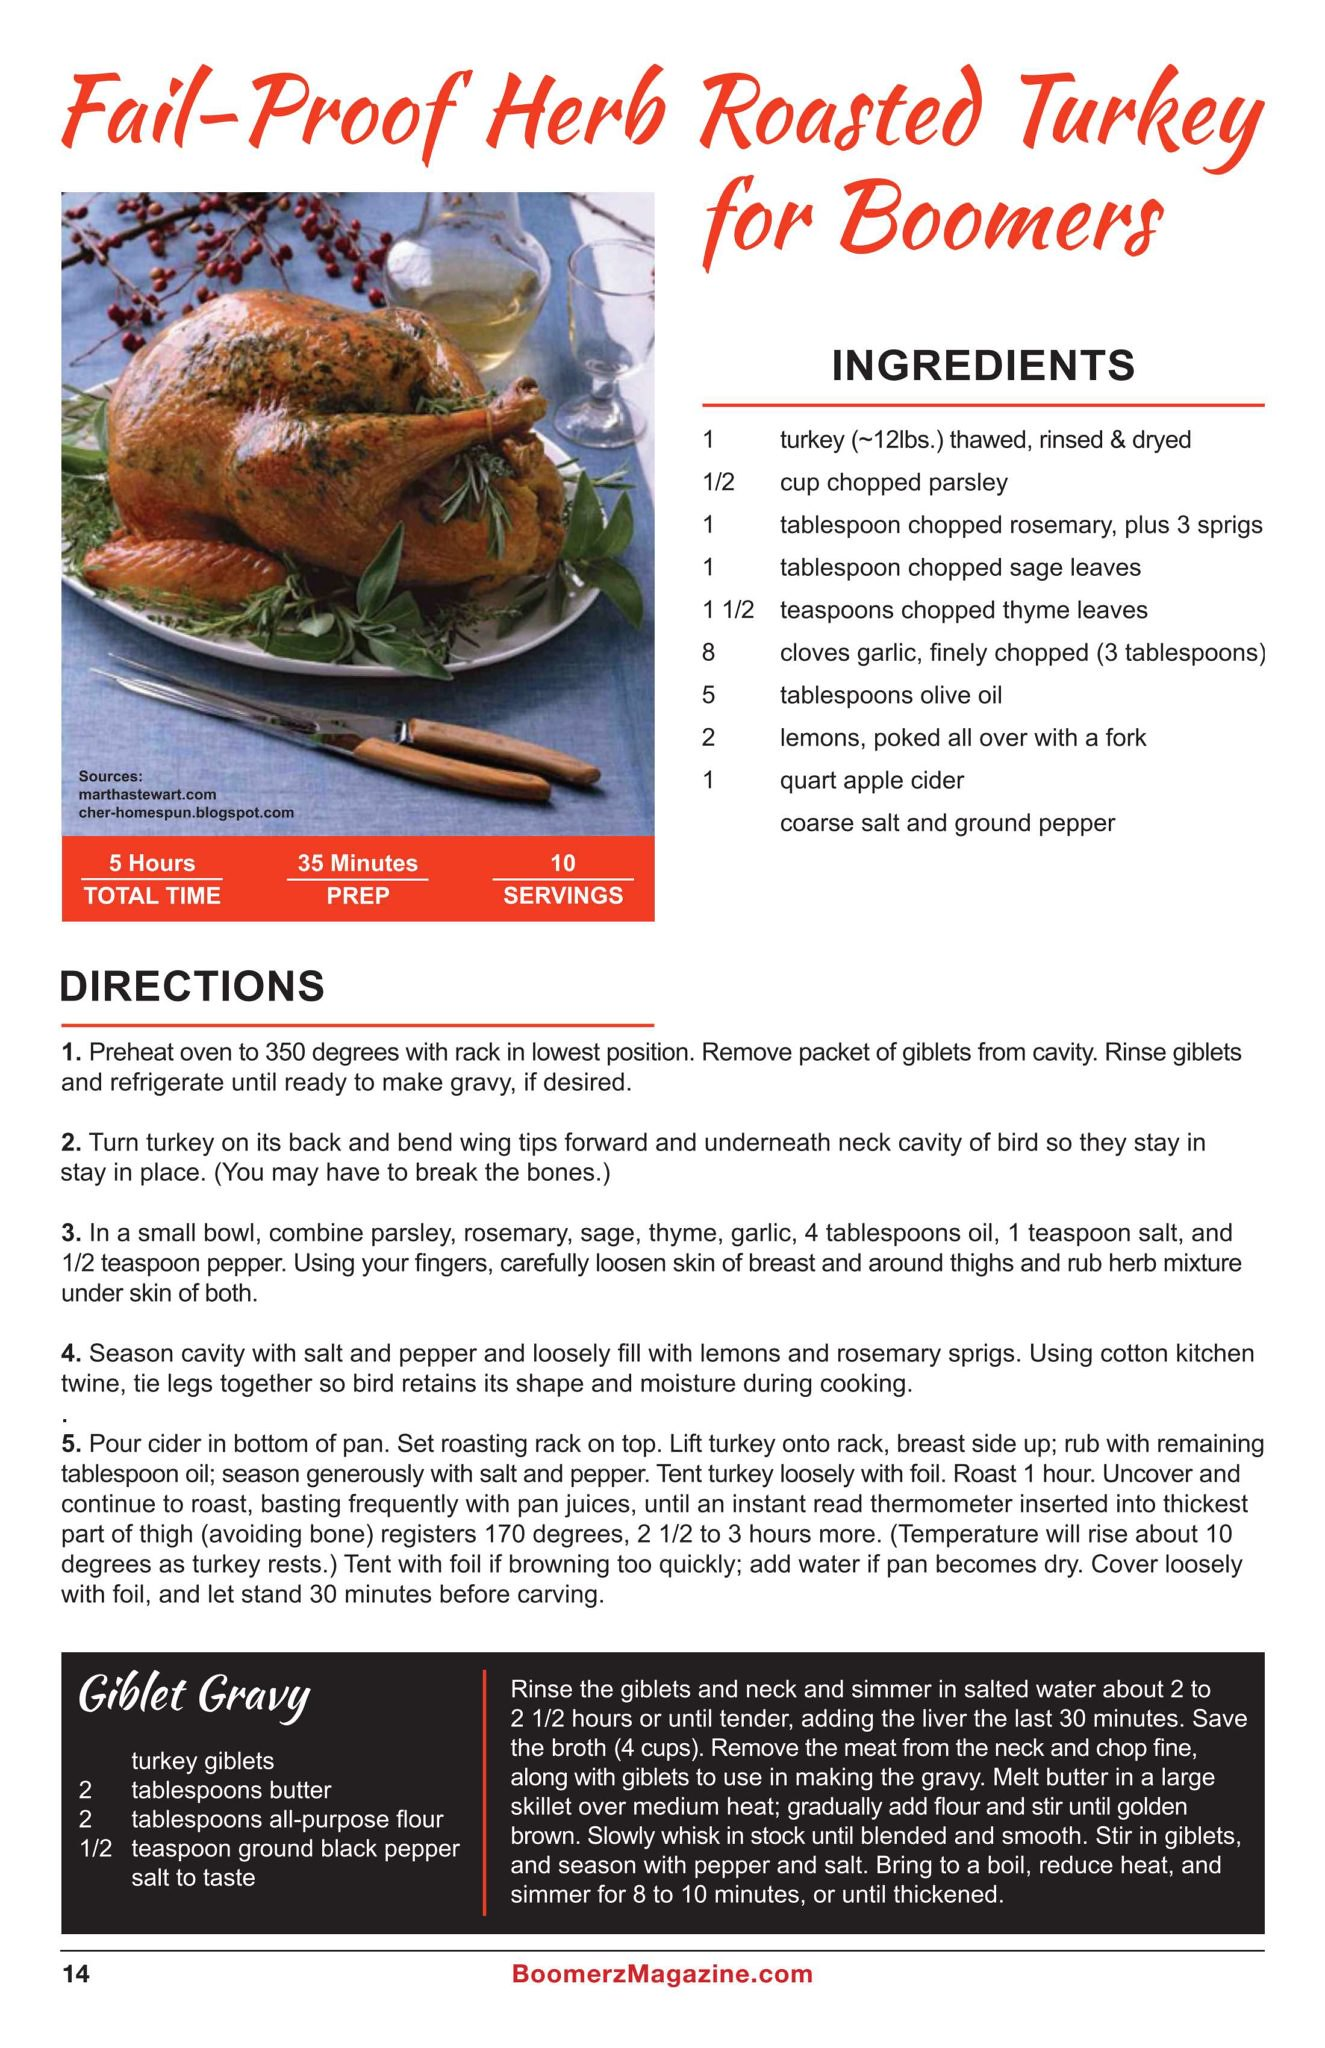 Boomerz Magazine 2018 November Fail Proof Herb Roasted Turkey for Boomers